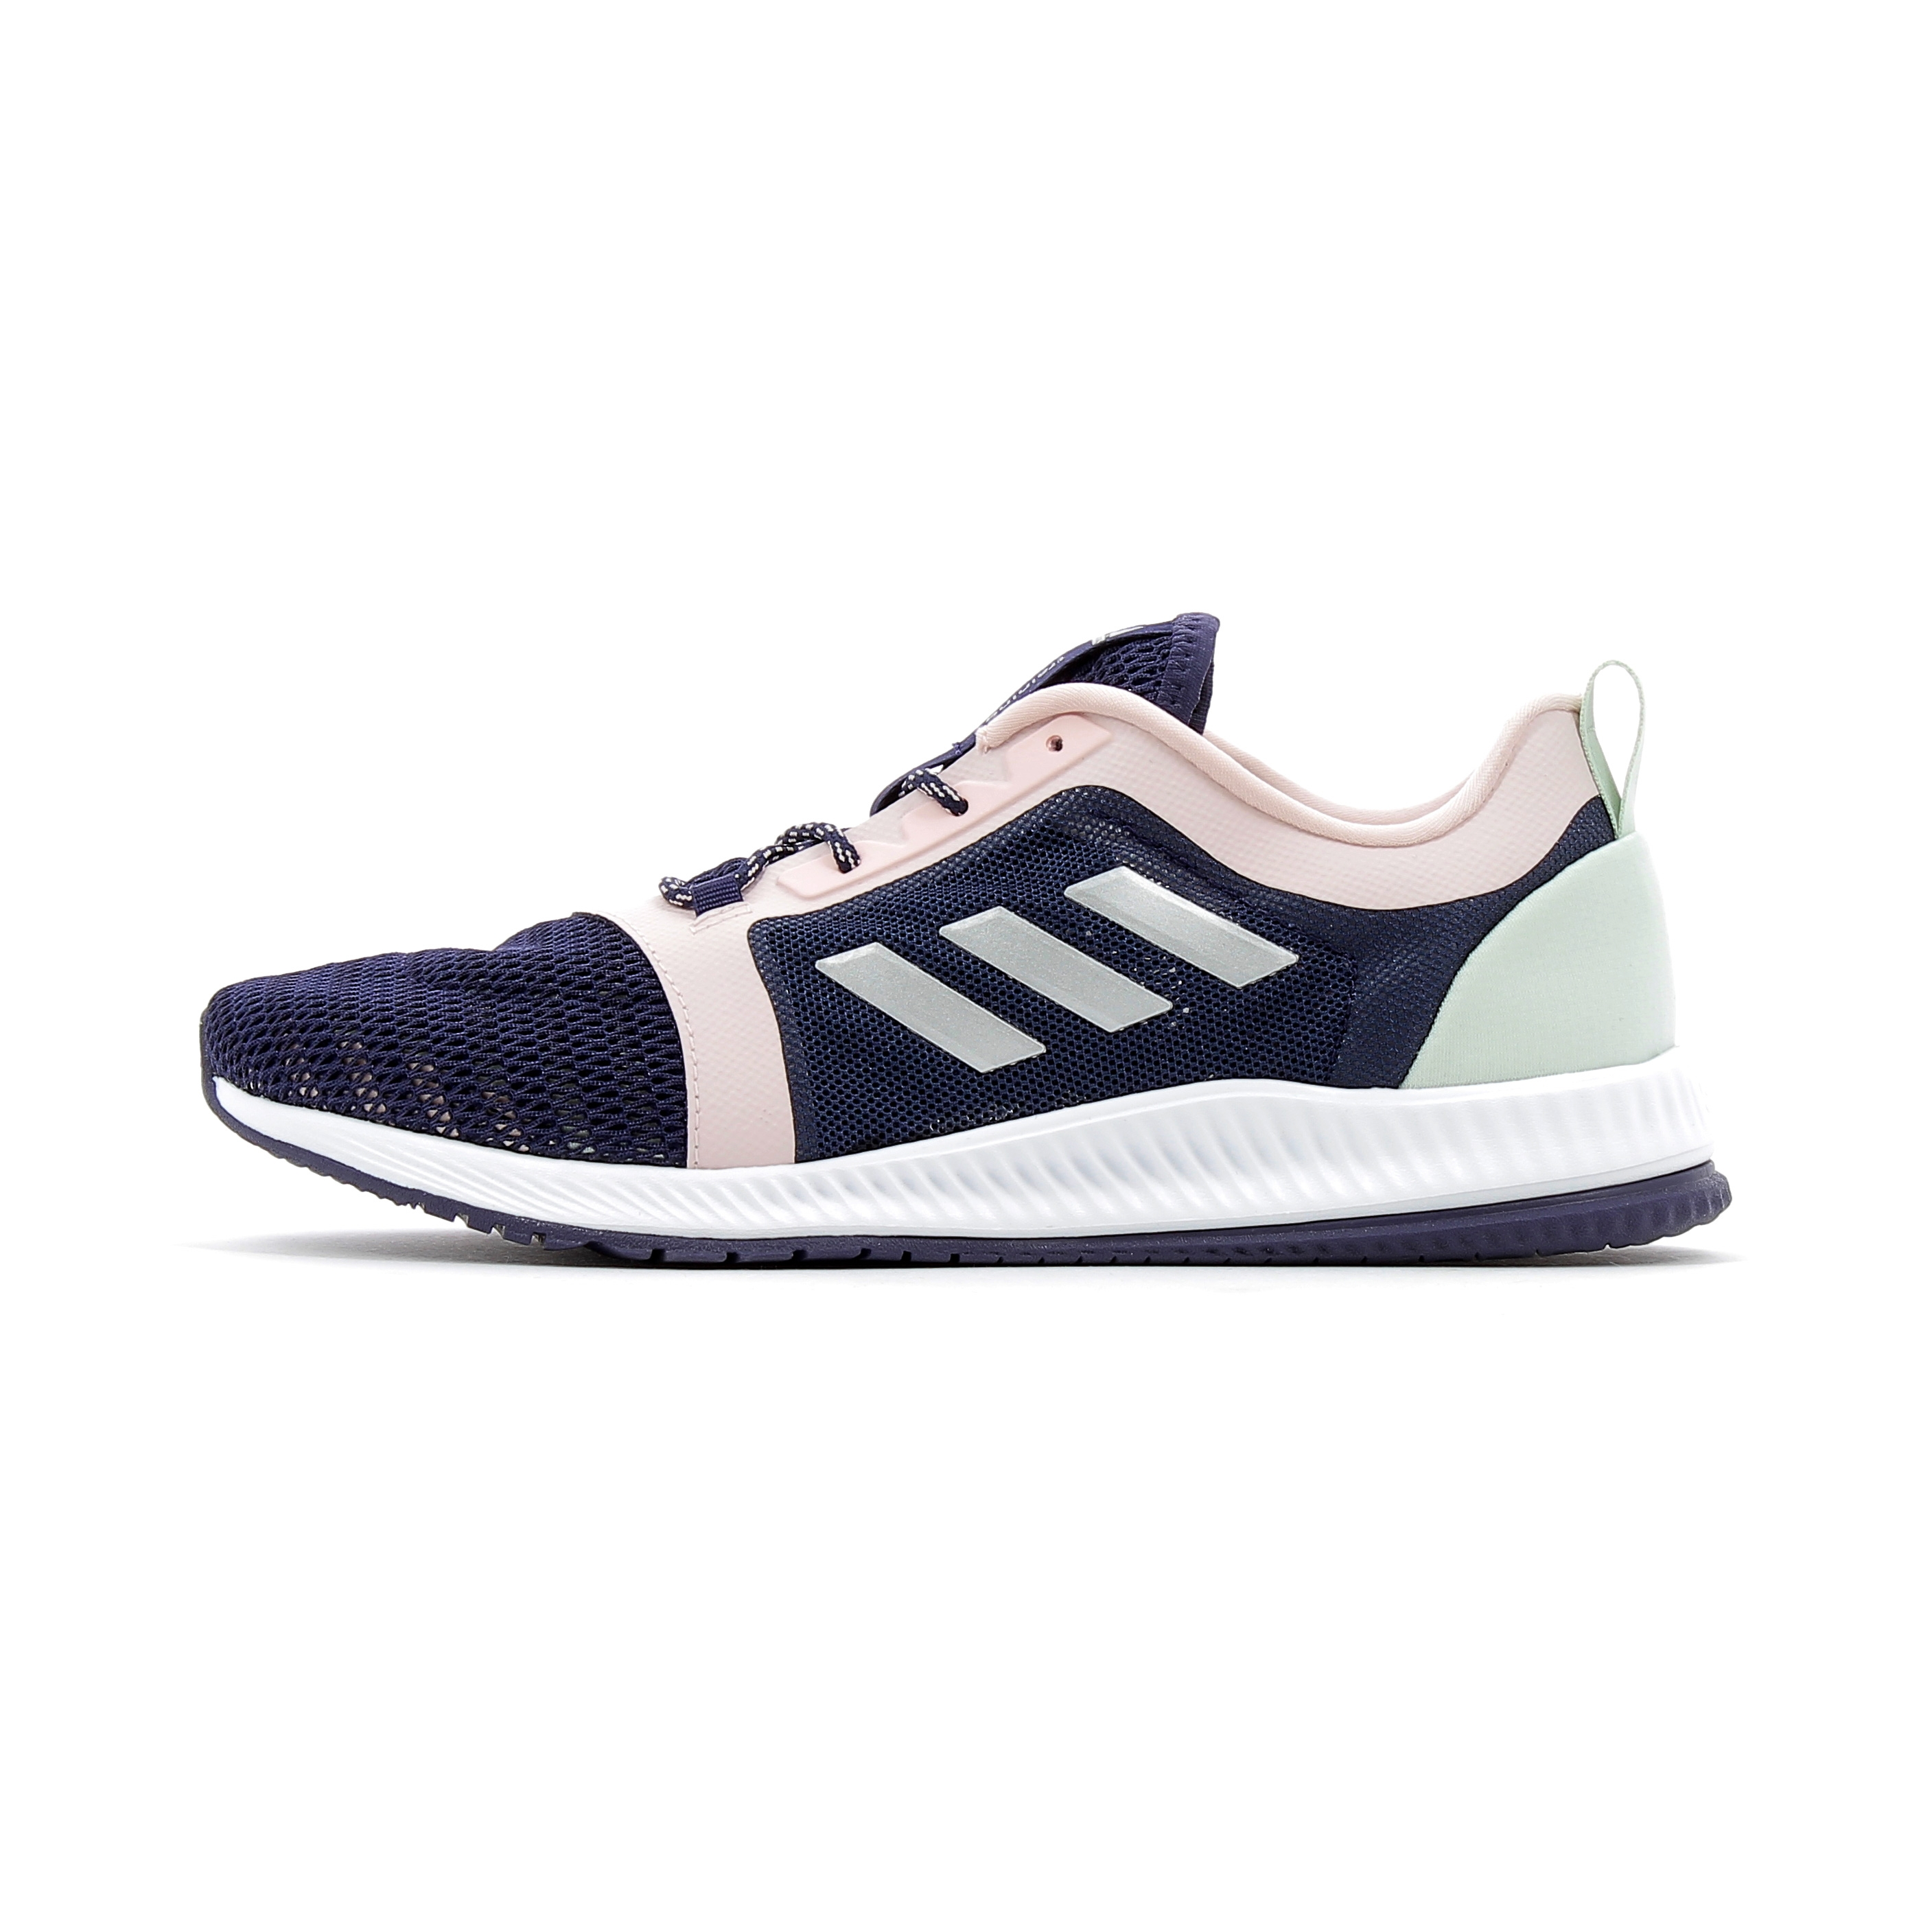 detailed look fe6a9 c4aed Chaussures de Cross Training Femme adidas running Cool TR Violet